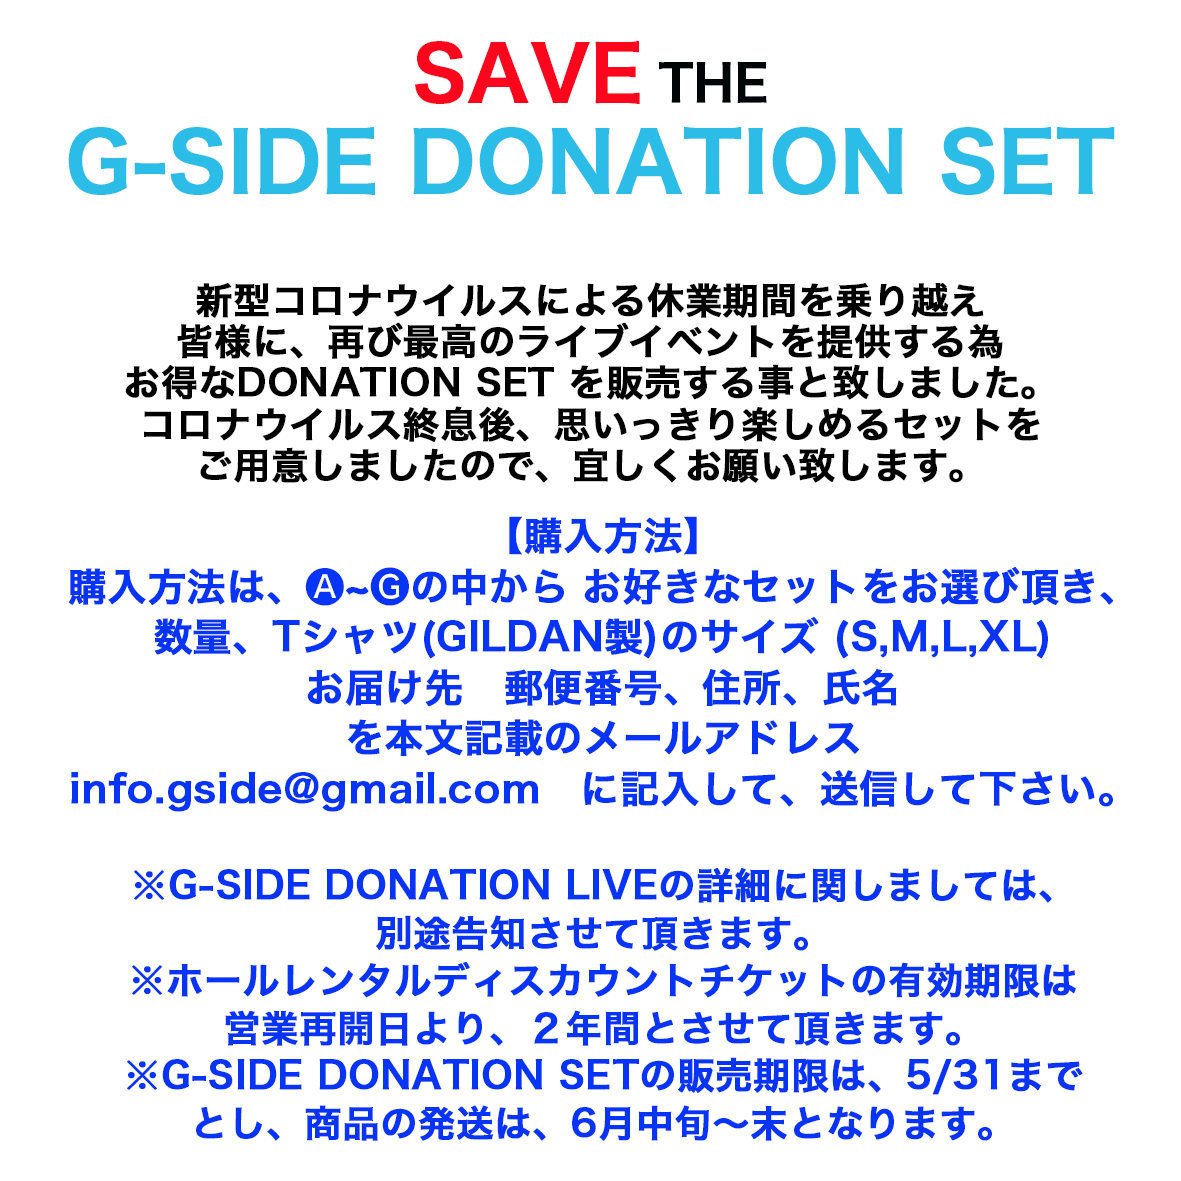 SAVE THE G-SIDE DONATION SET